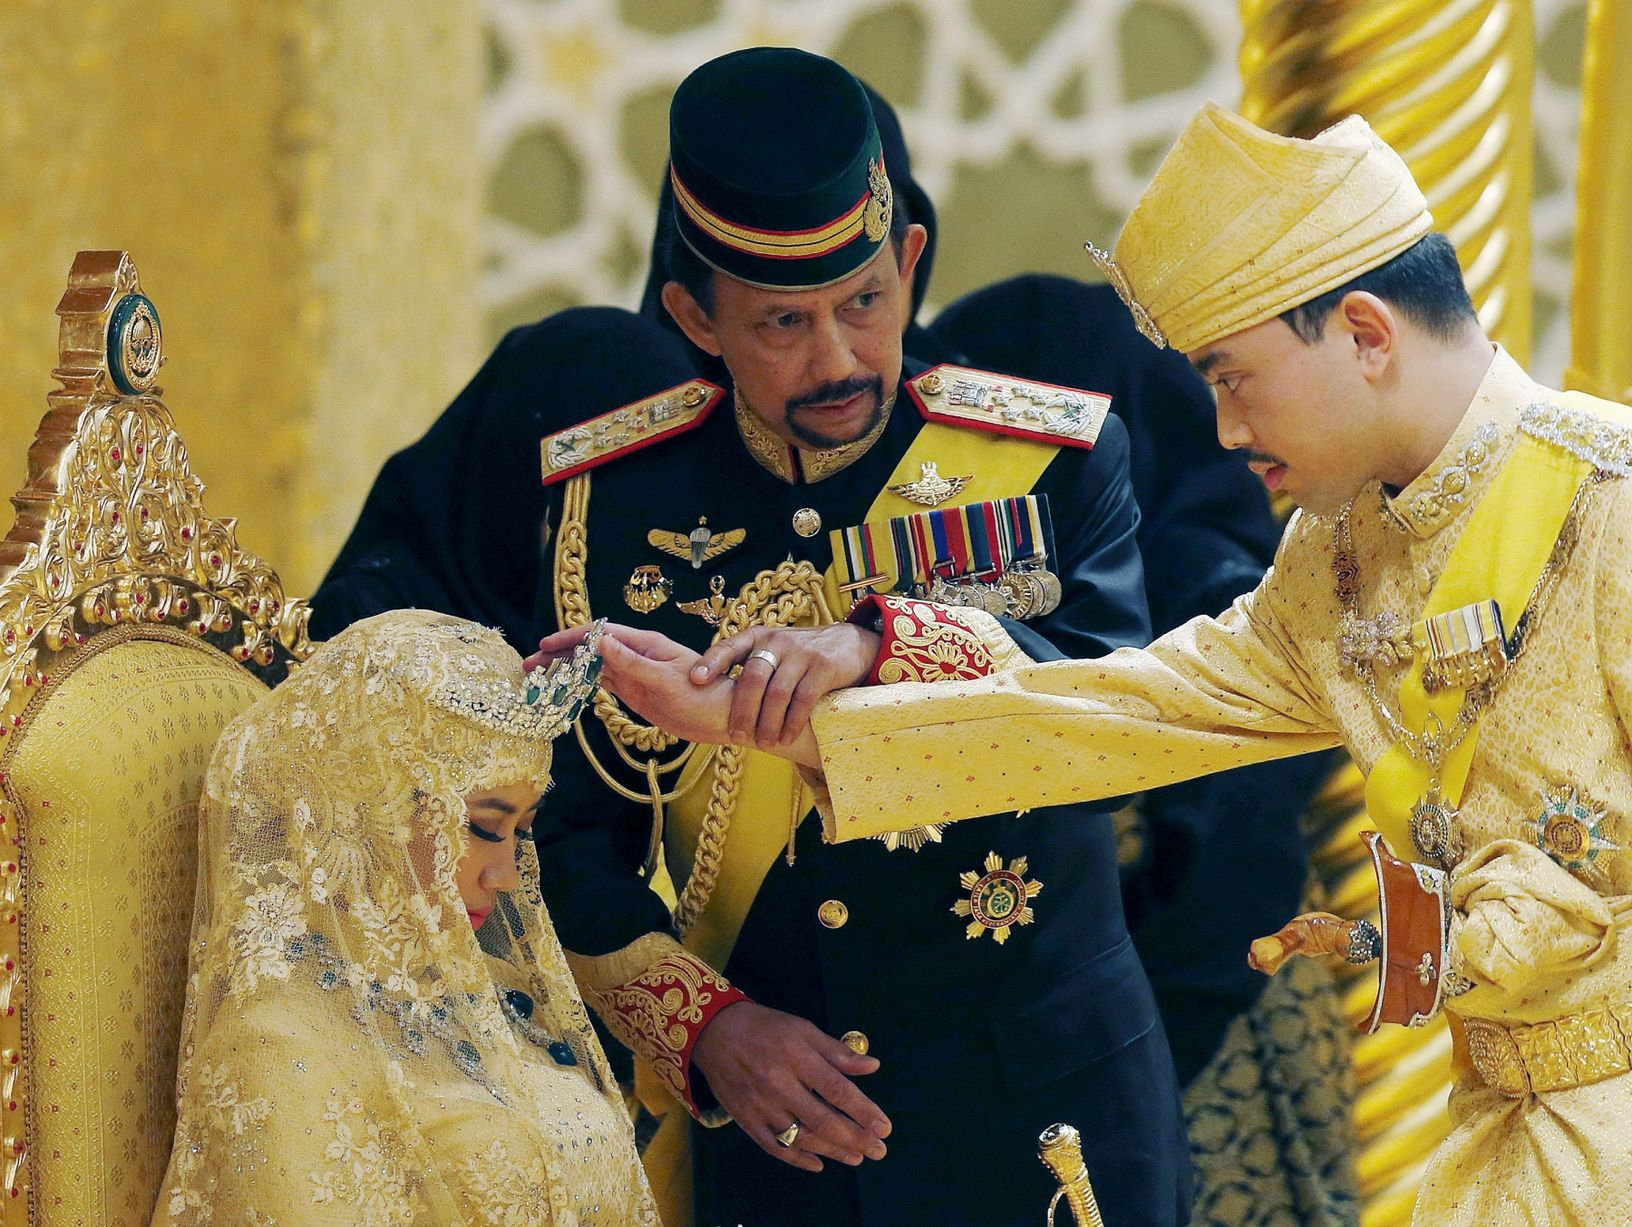 Wedding News: Sultan of Brunei's Son Celebrates Wedding